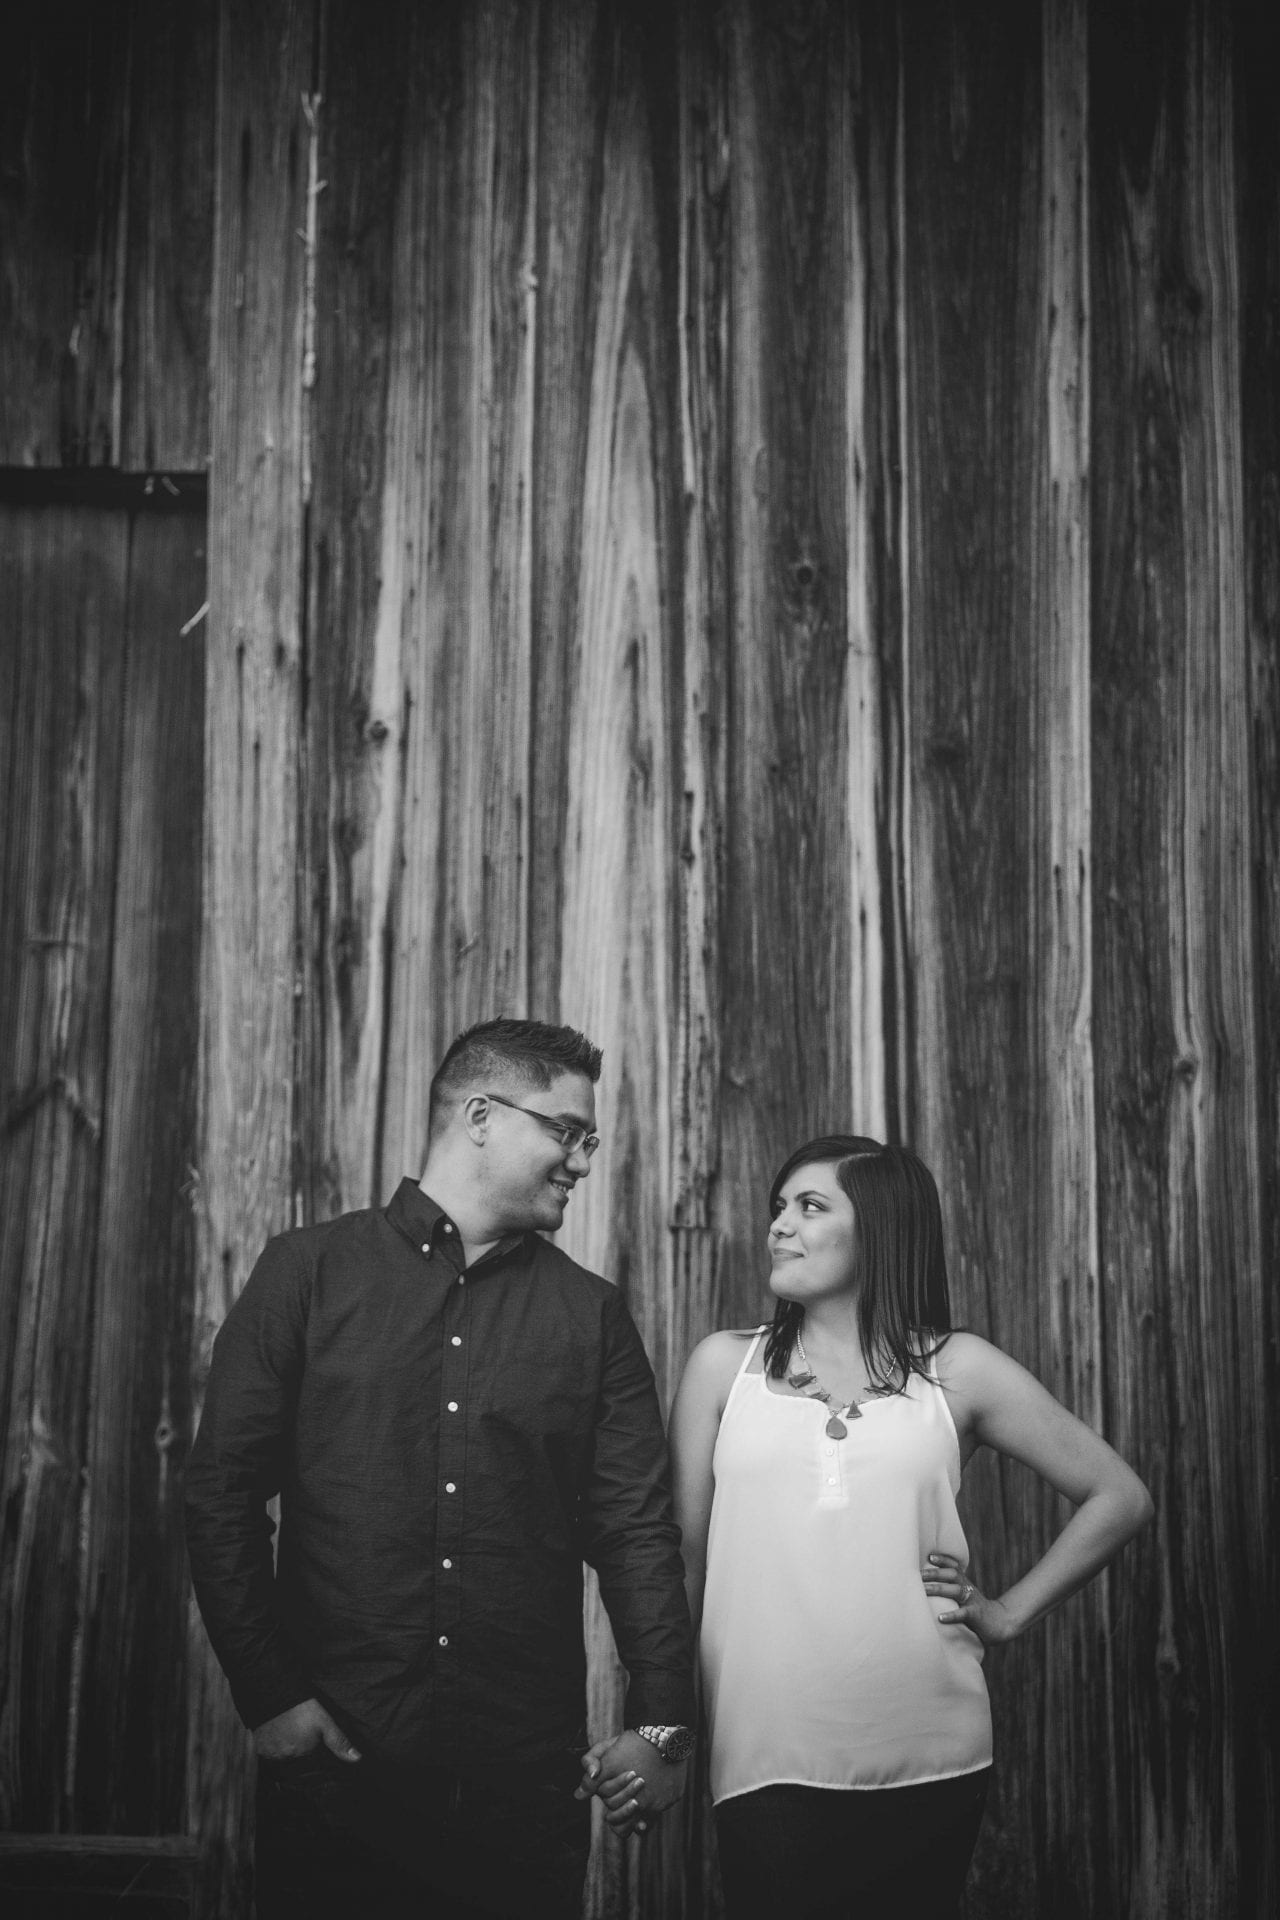 black and white engagement photo, couple standing in front of wood panels